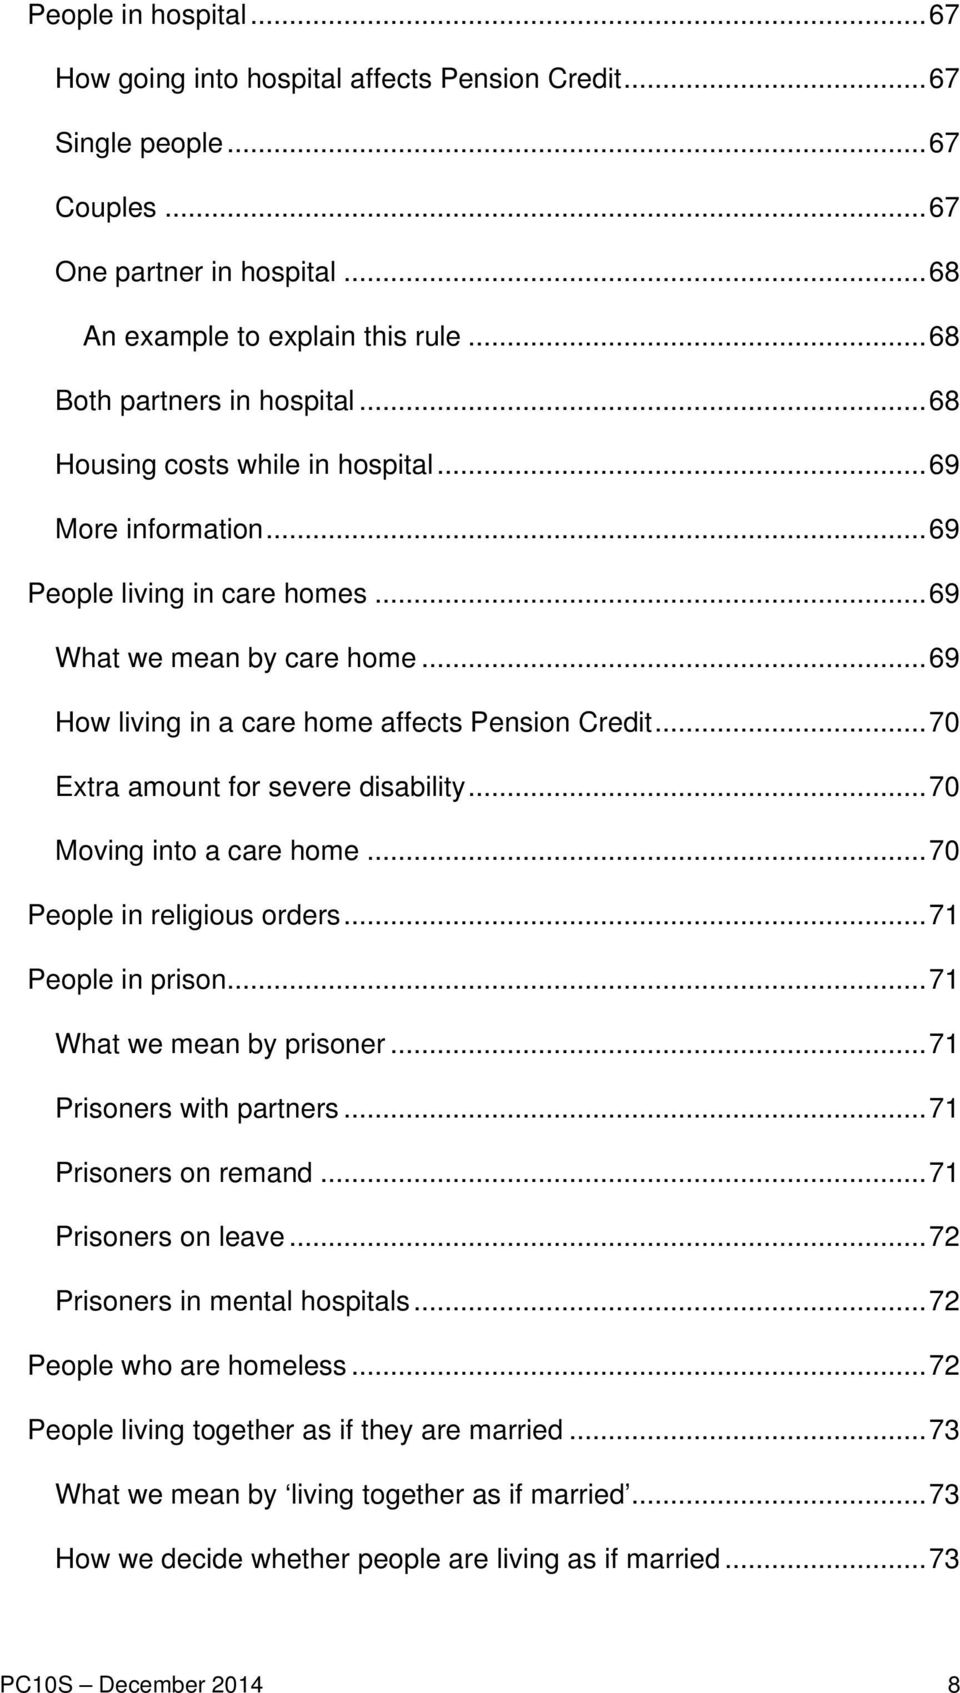 .. 69 How living in a care home affects Pension Credit... 70 Extra amount for severe disability... 70 Moving into a care home... 70 People in religious orders... 71 People in prison.